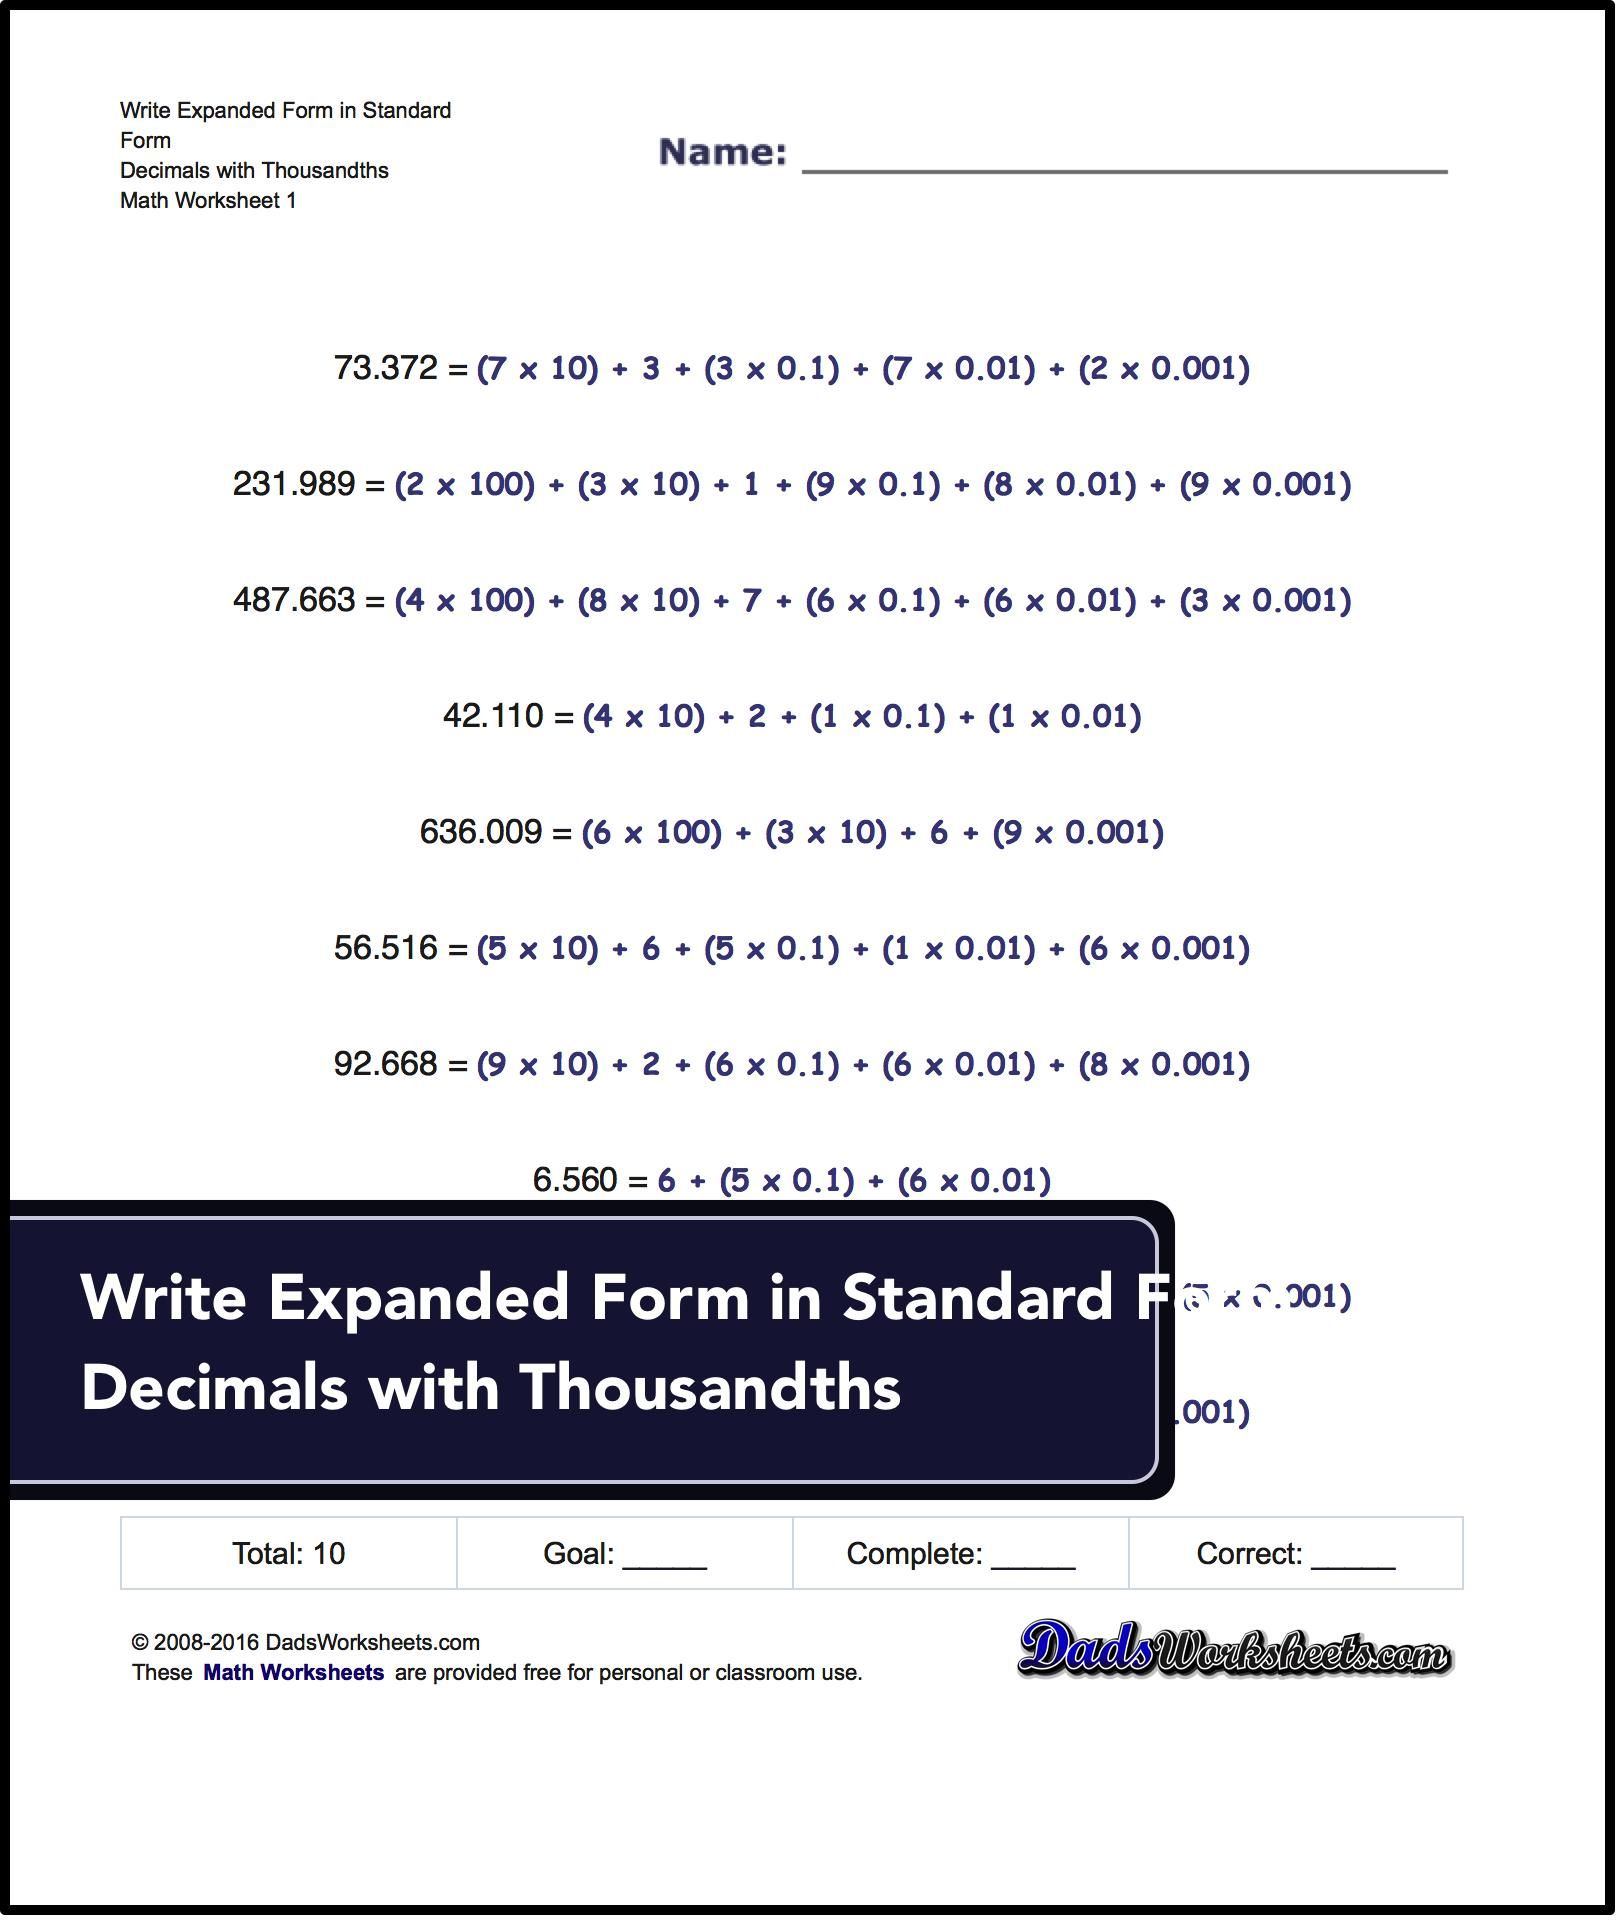 Standard Expanded And Word Form For Write Expanded Form